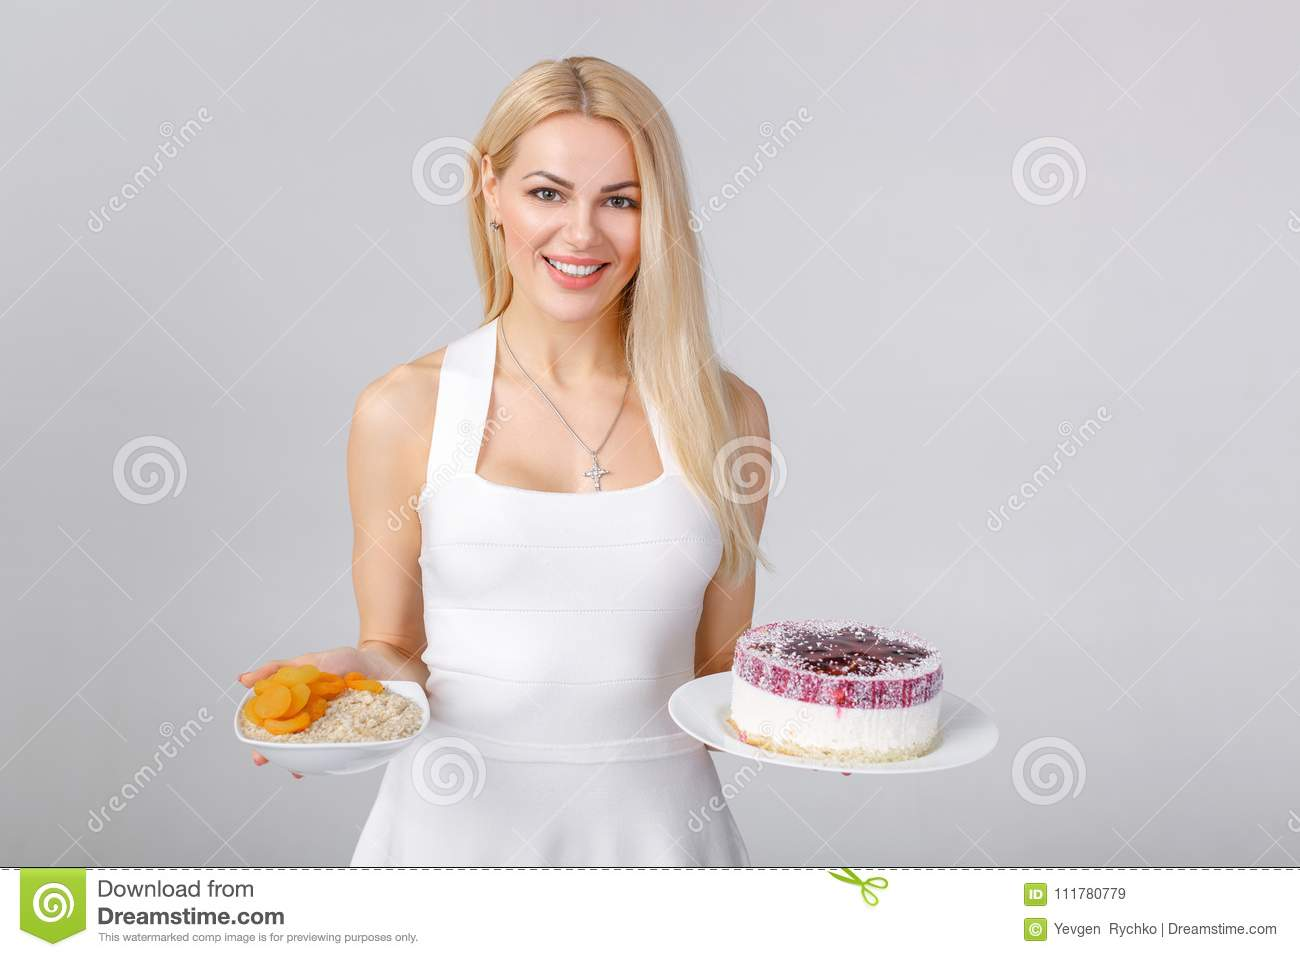 Woman chooses between cake and oatmeal